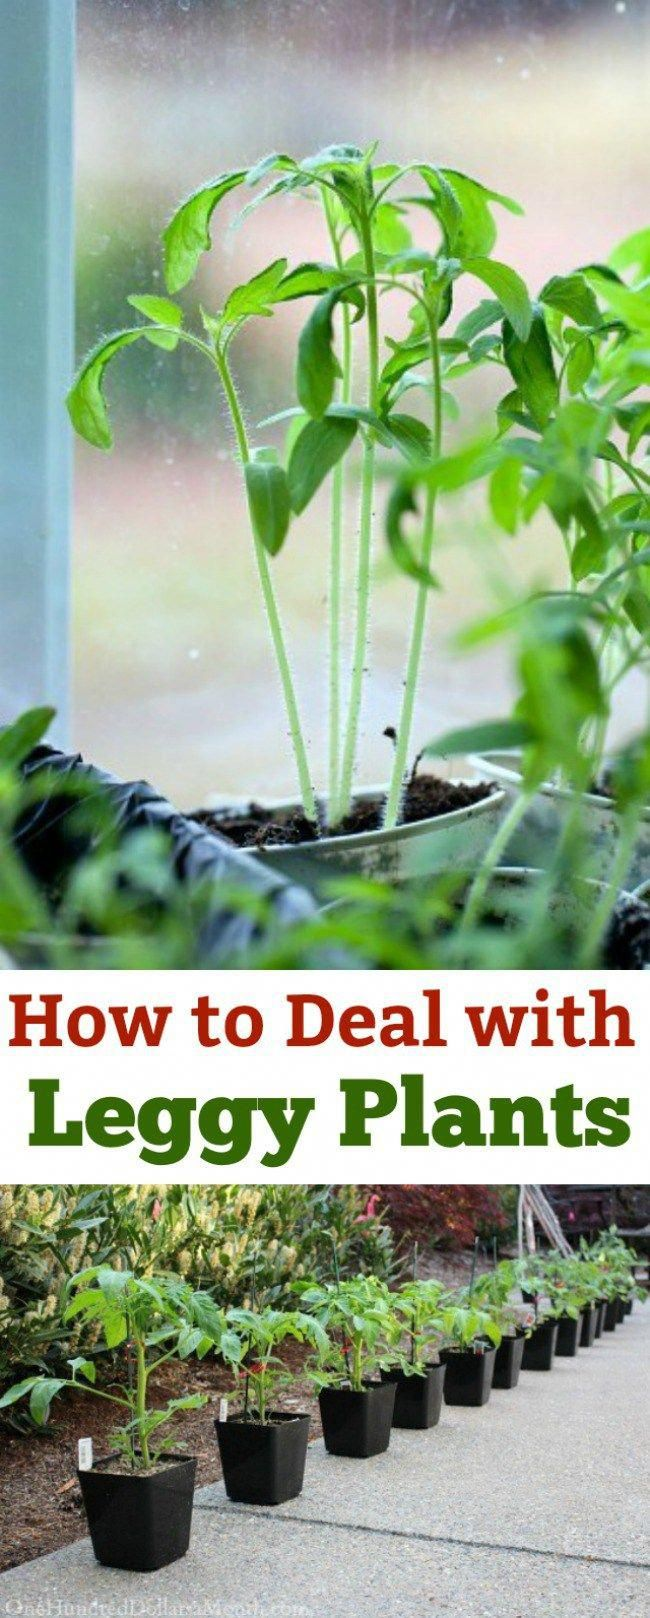 How To Deal With Leggy Plants Spindly Seedlings Gardening Tips Seed Starting